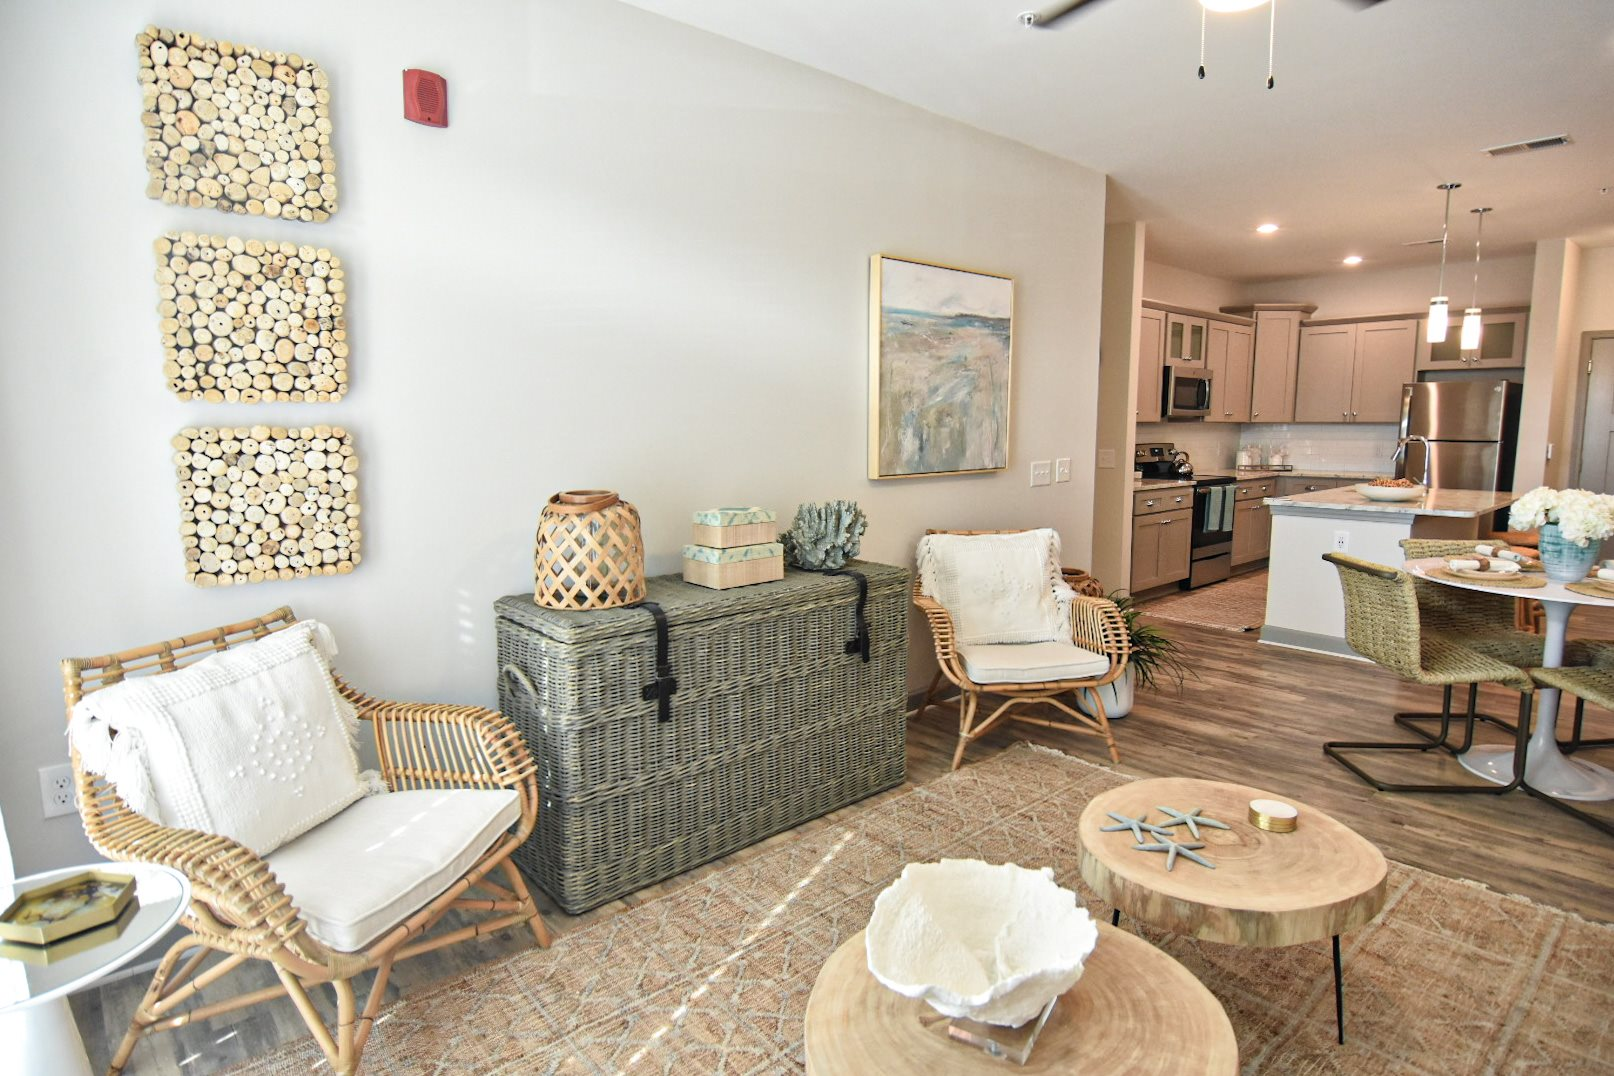 Coastal inspired decor in apartment living room Hawthorne at Smith Creek Wilmington NC